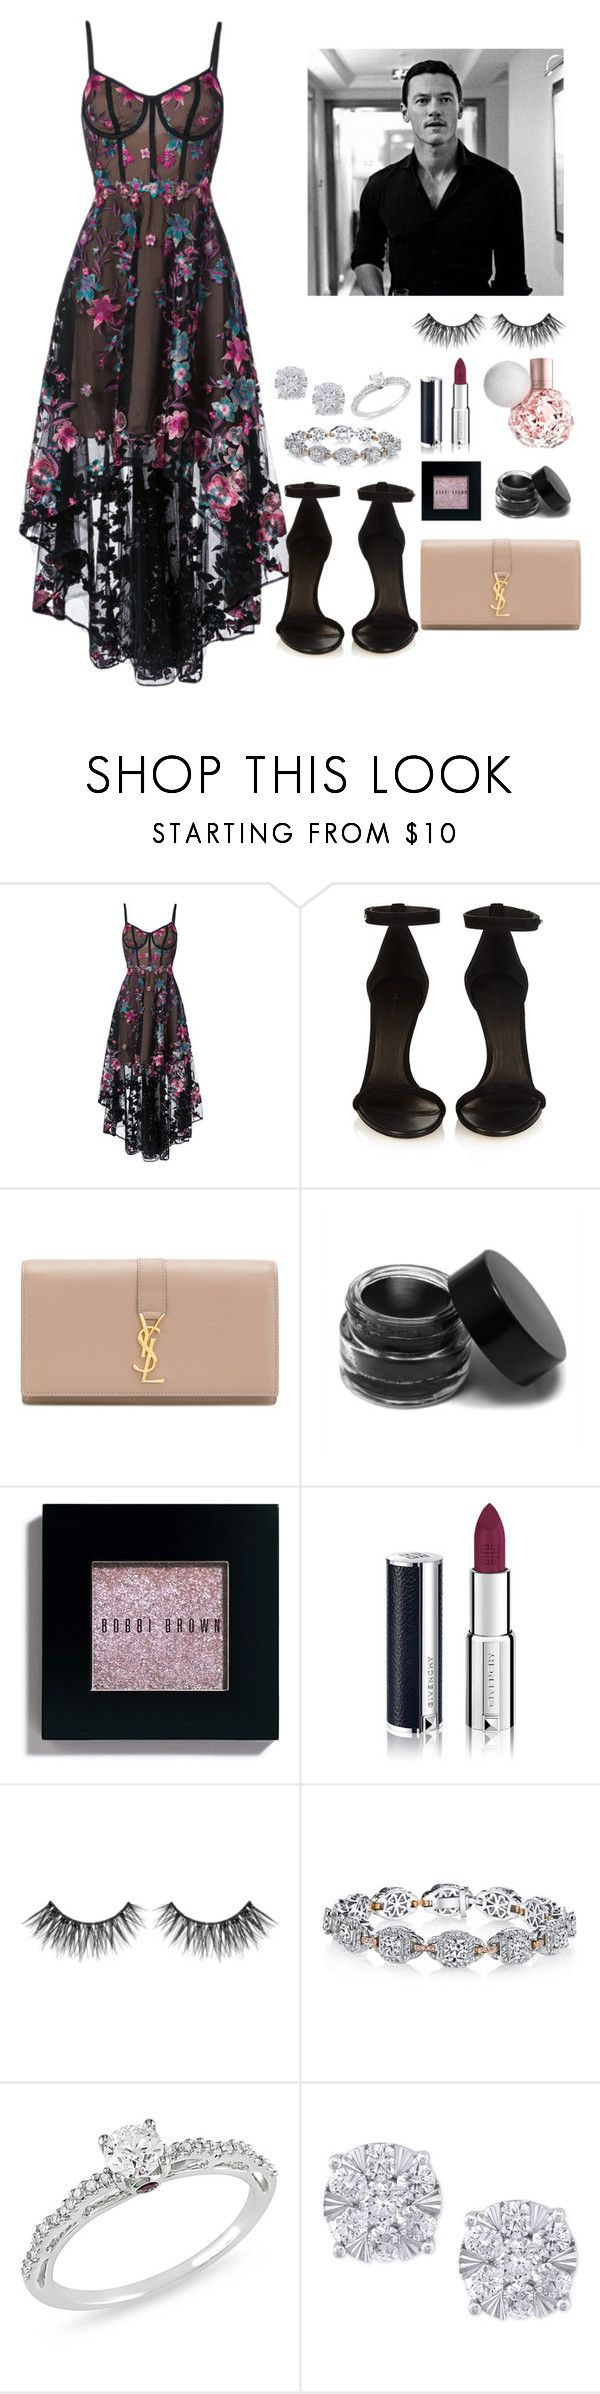 """""""You're my forever boy"""" by arianabut1993 on Polyvore featuring moda, Notte by Marchesa, Isabel Marant, Yves Saint Laurent, Bobbi Brown Cosmetics, Givenchy, Harry Kotlar, Ice y Effy Jewelry"""